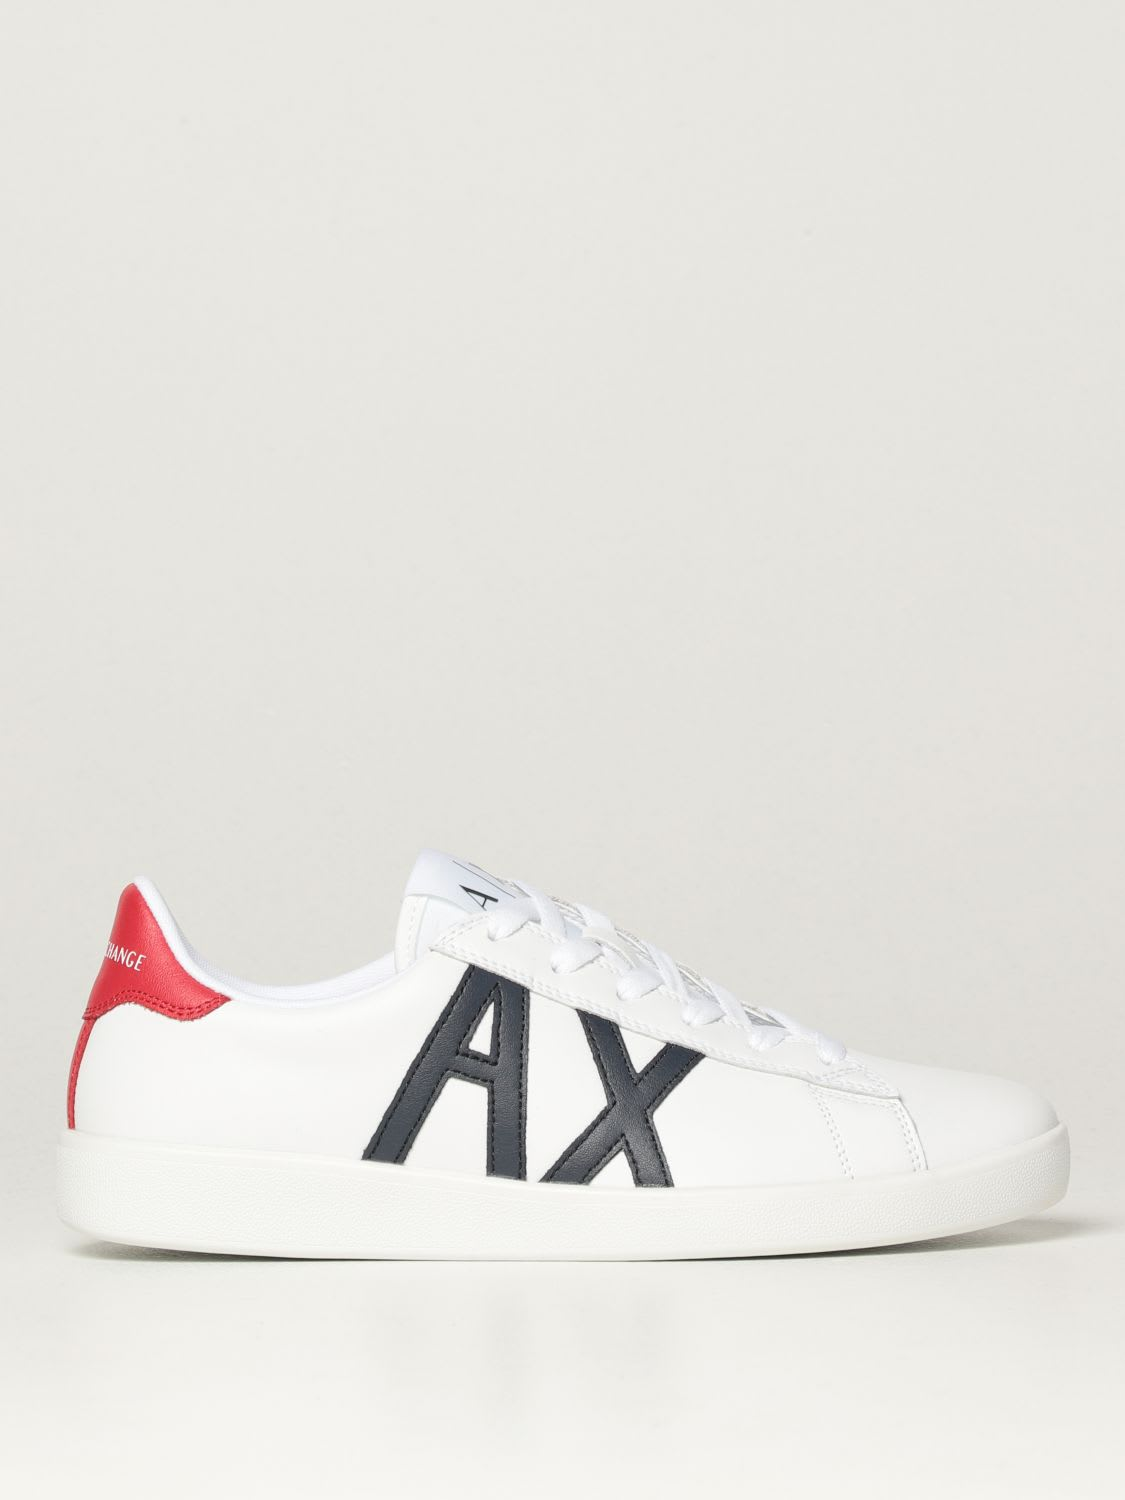 Armani Exchange Sneakers Armani Exchange Sneakers In Leather